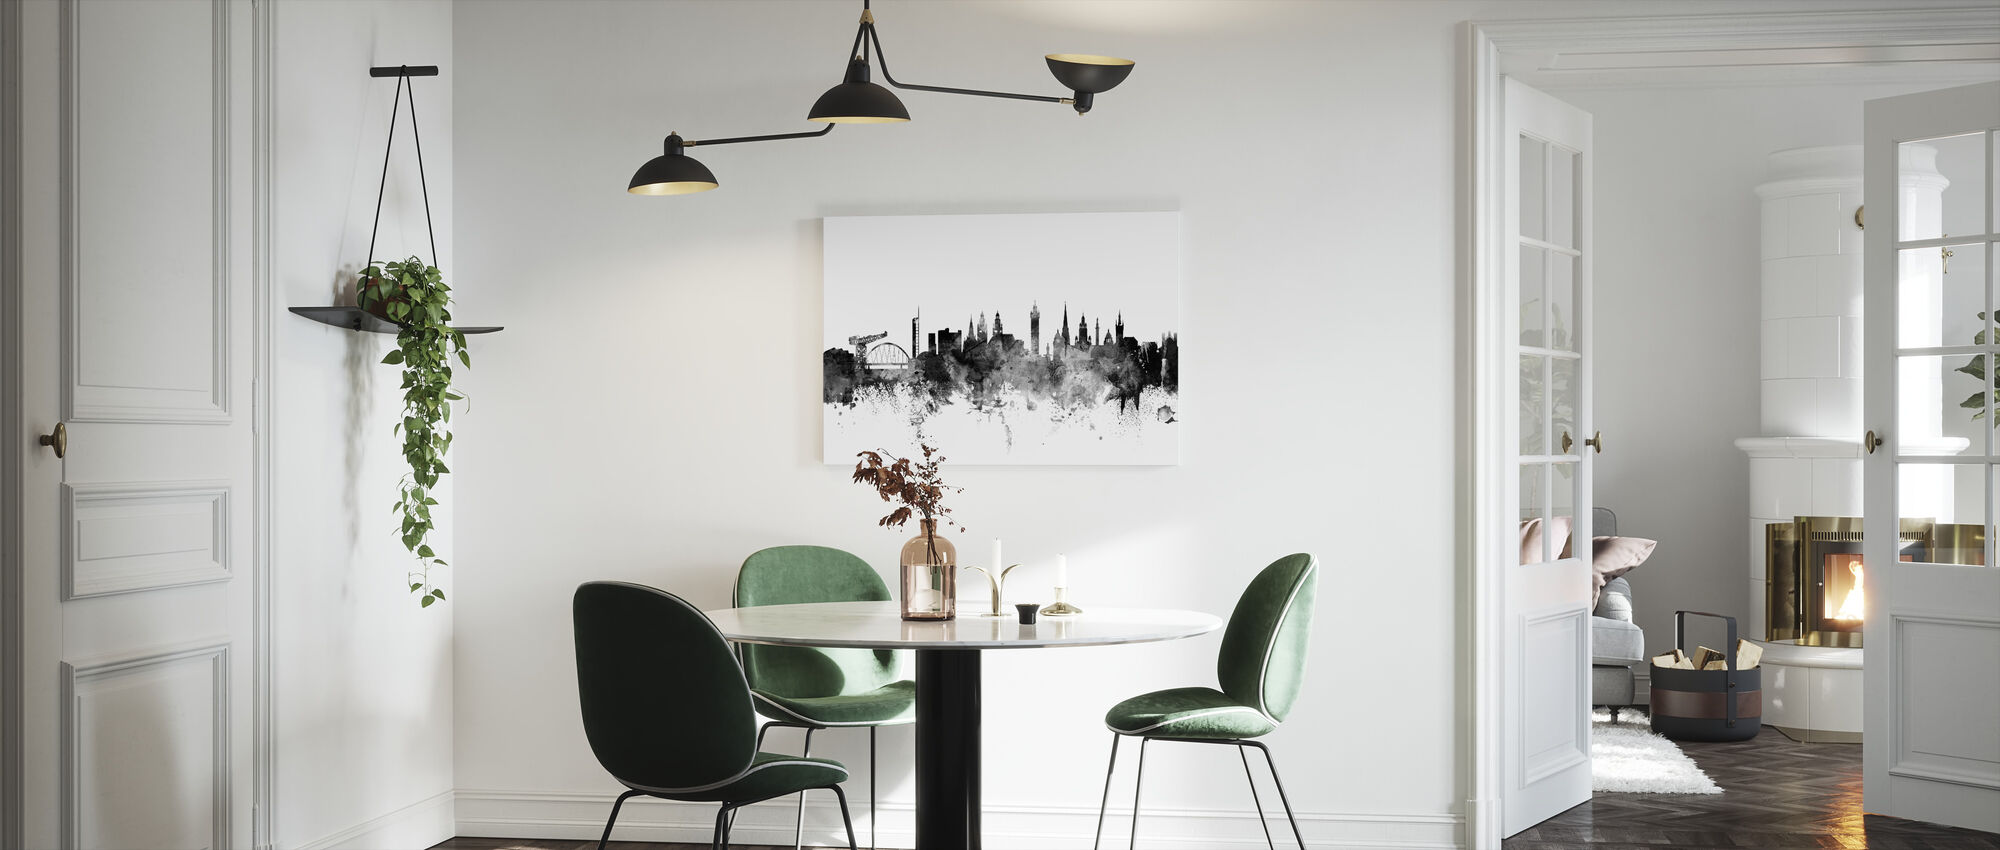 Glasgow Scotland Skyline Black - Canvas print - Kitchen